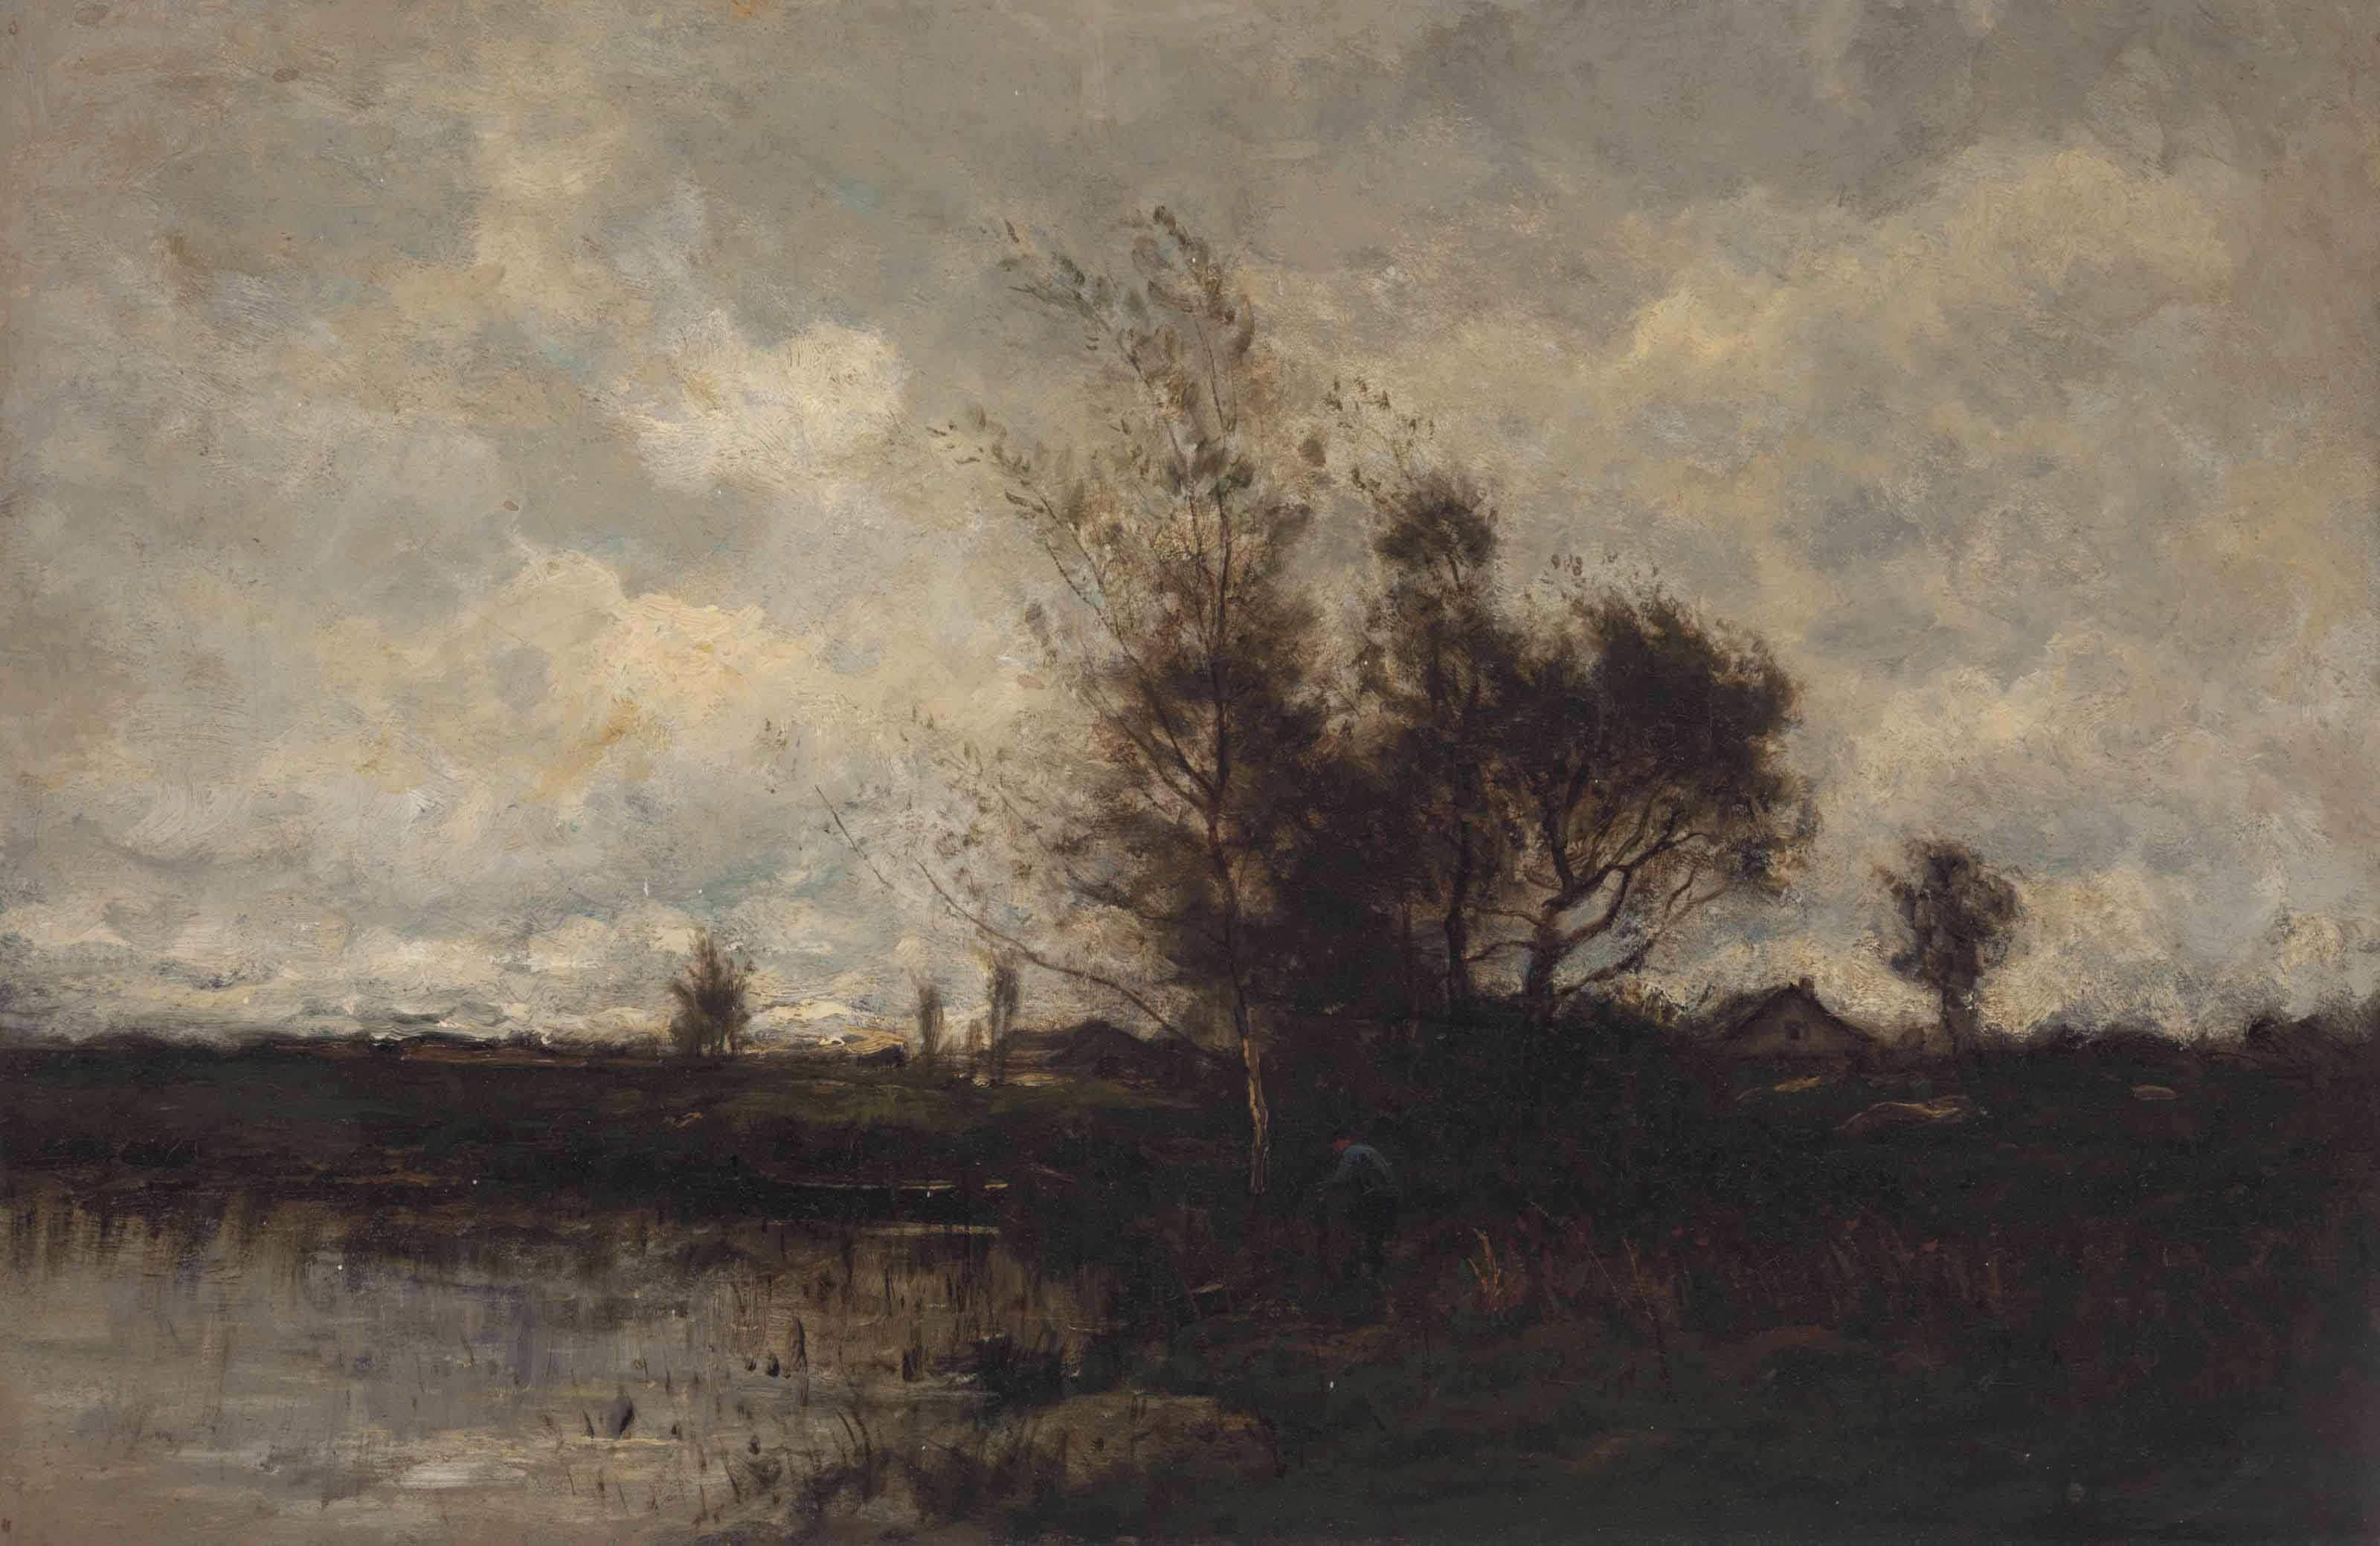 Landscape with figure along water's edge